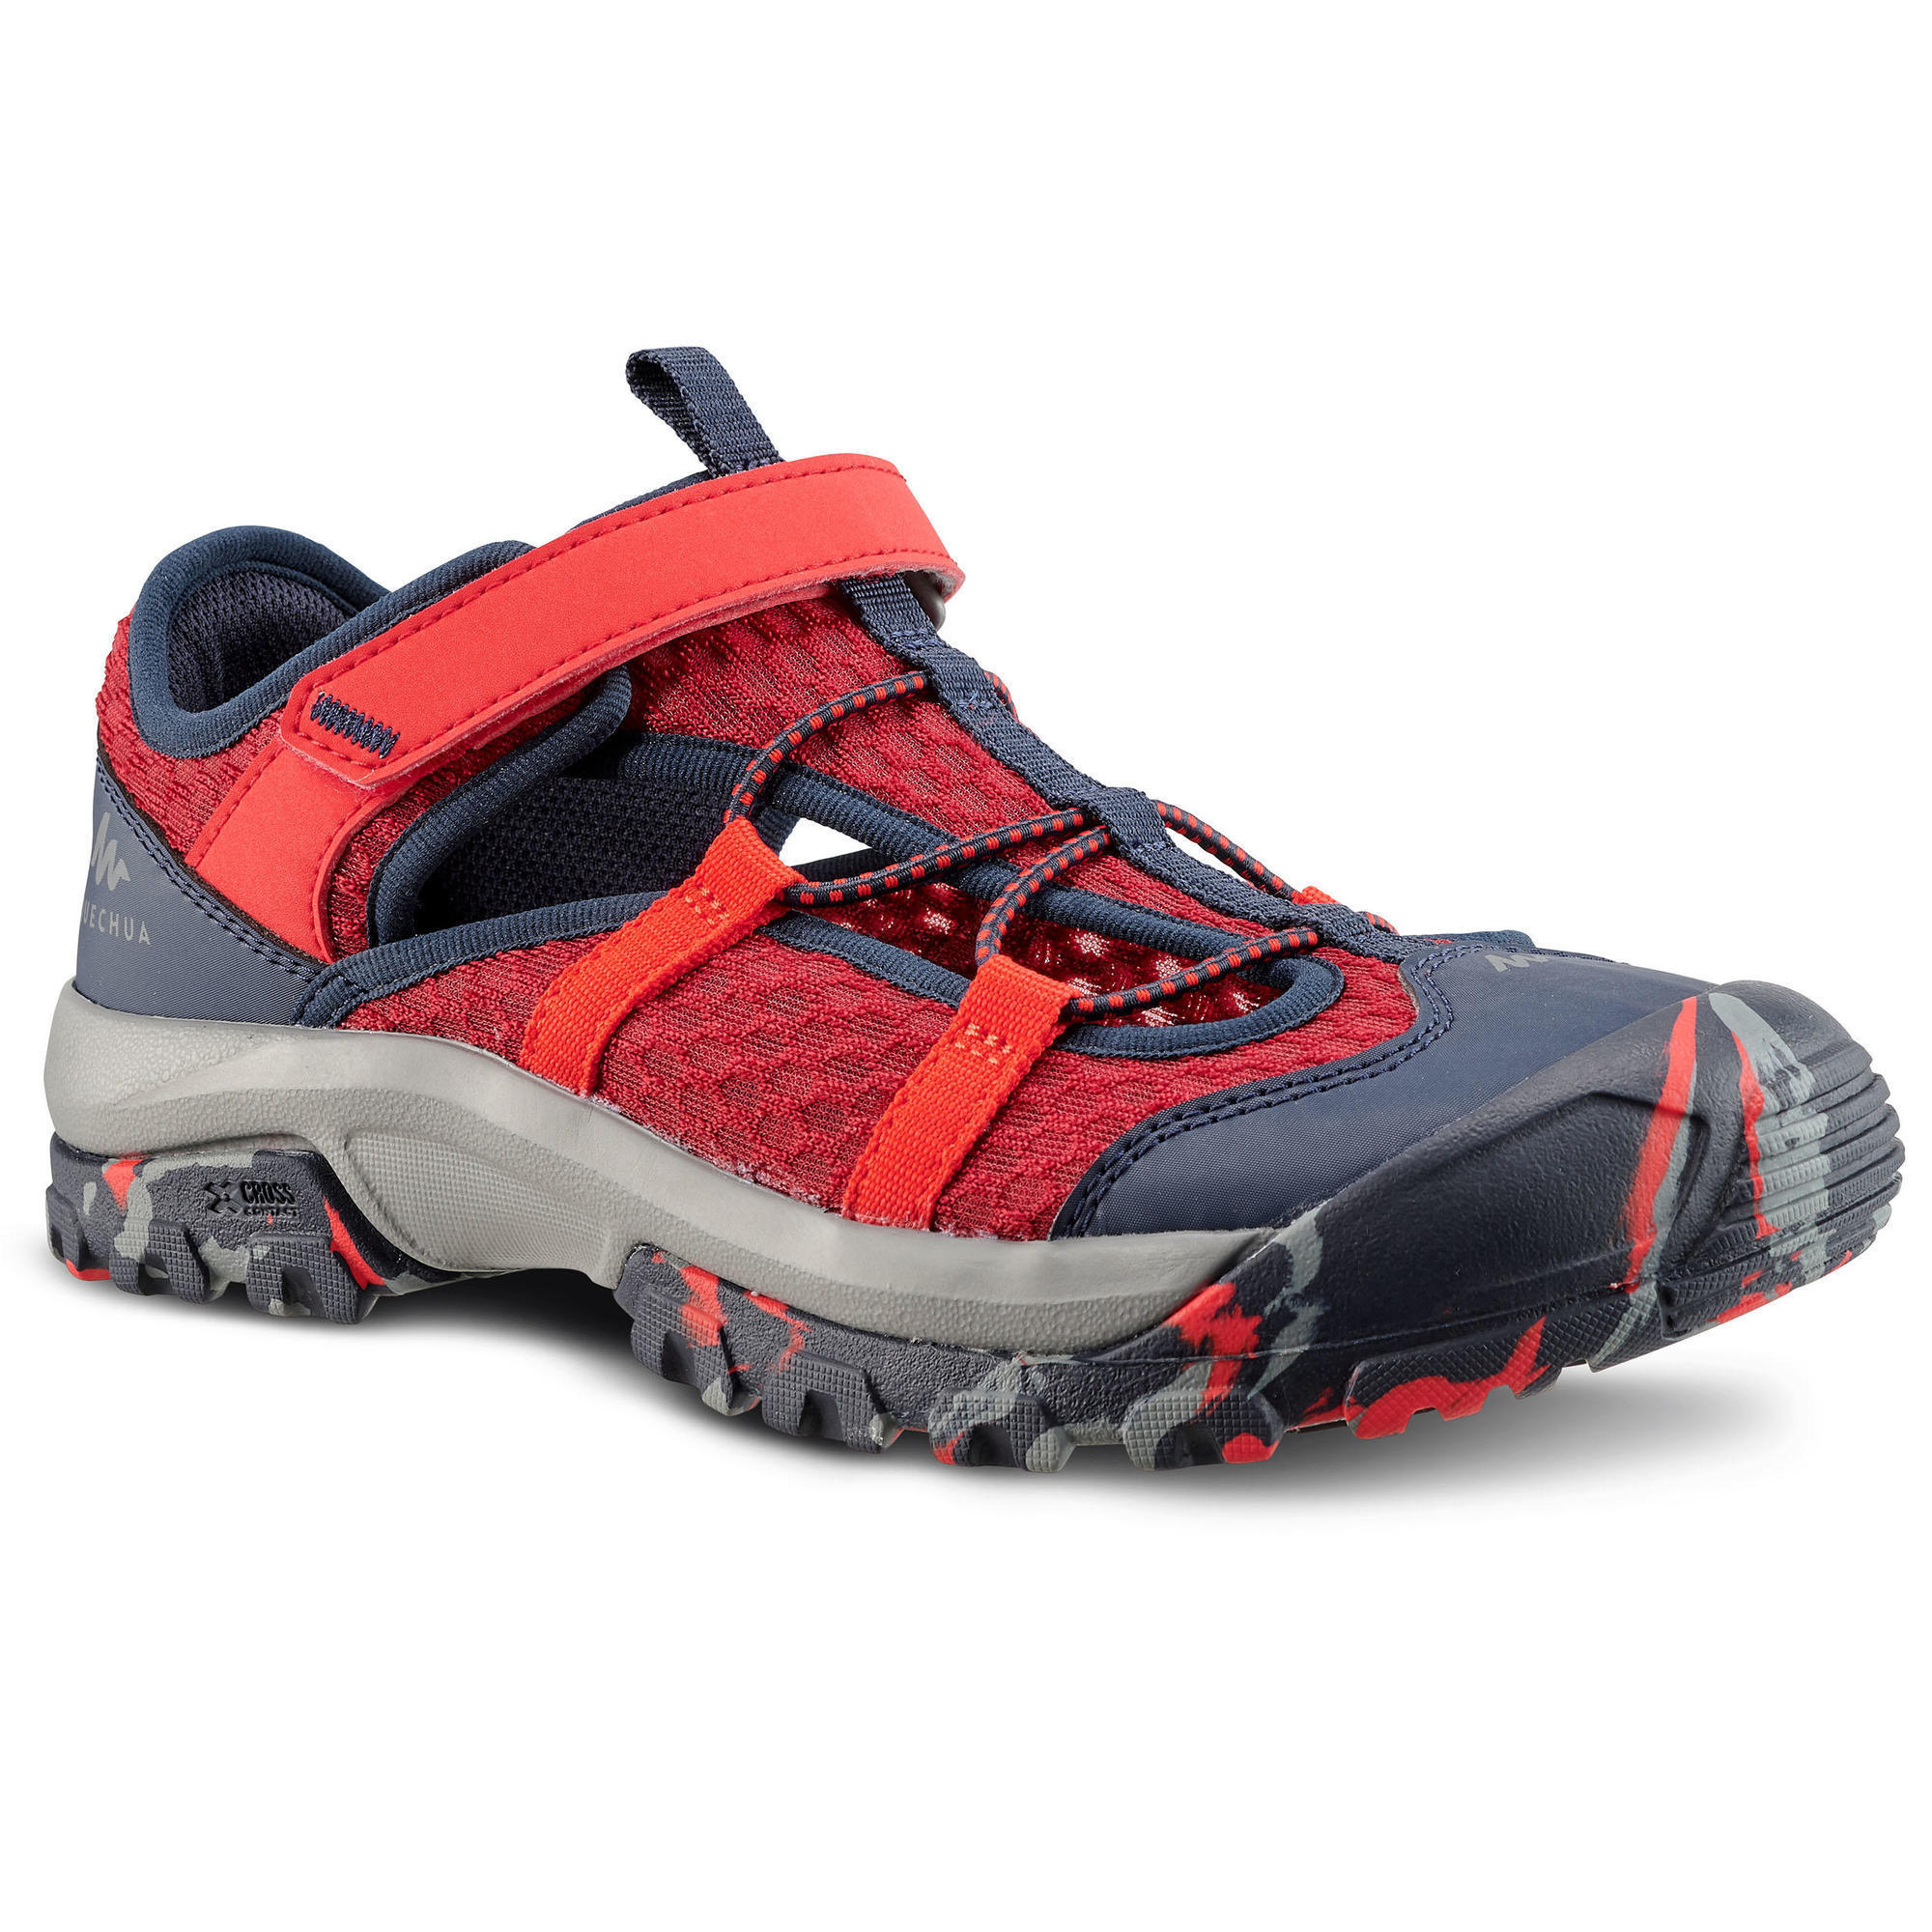 Kids' Hiking Sandals MH150 TW - 28 TO